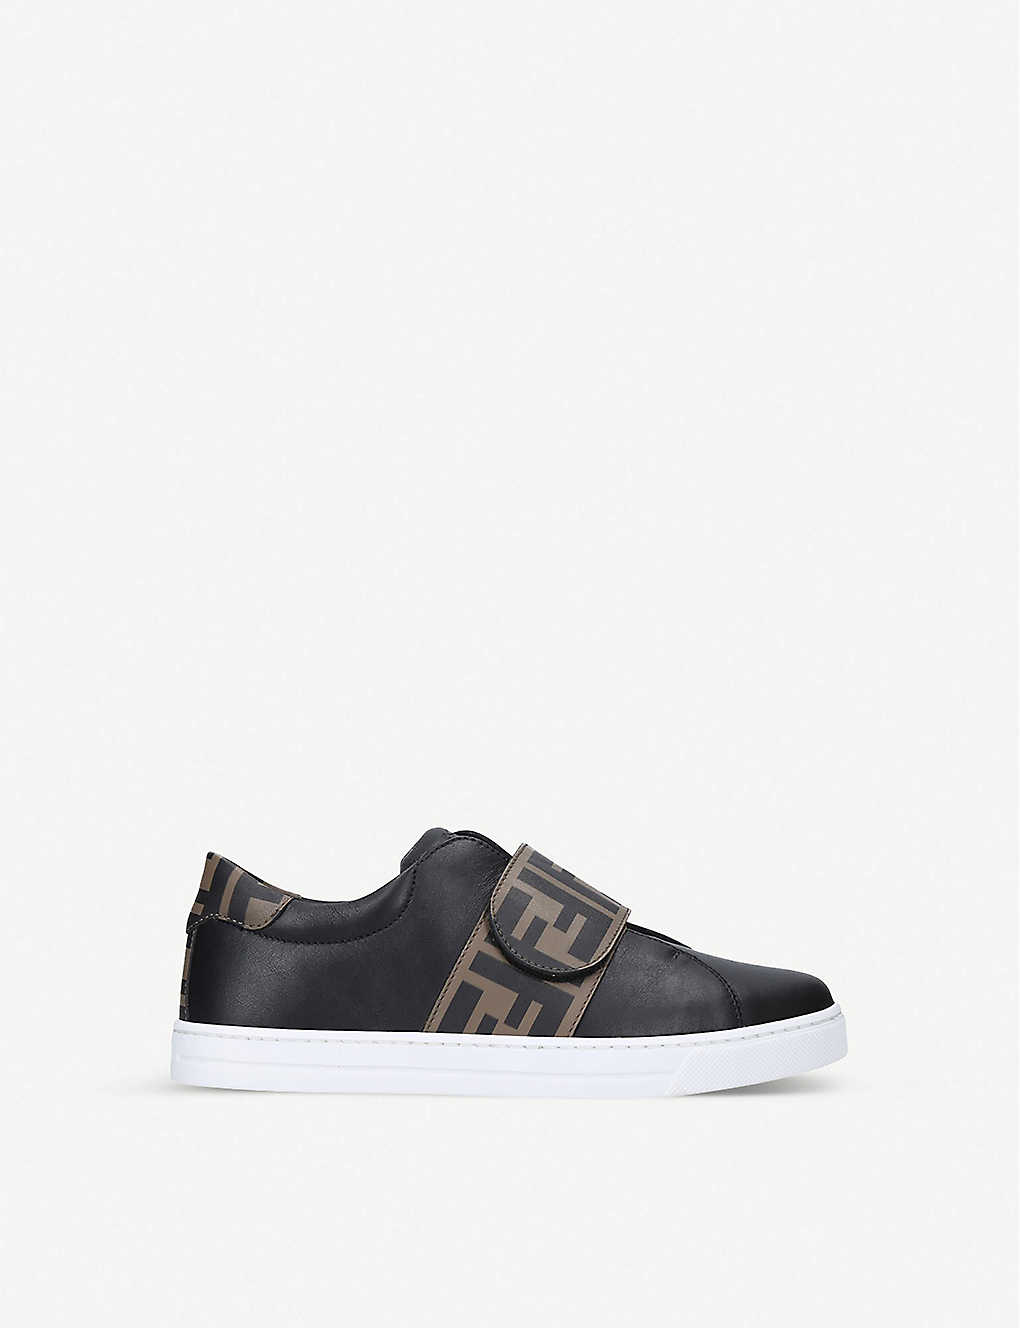 FENDI: Logo-print leather trainers 3-7 years